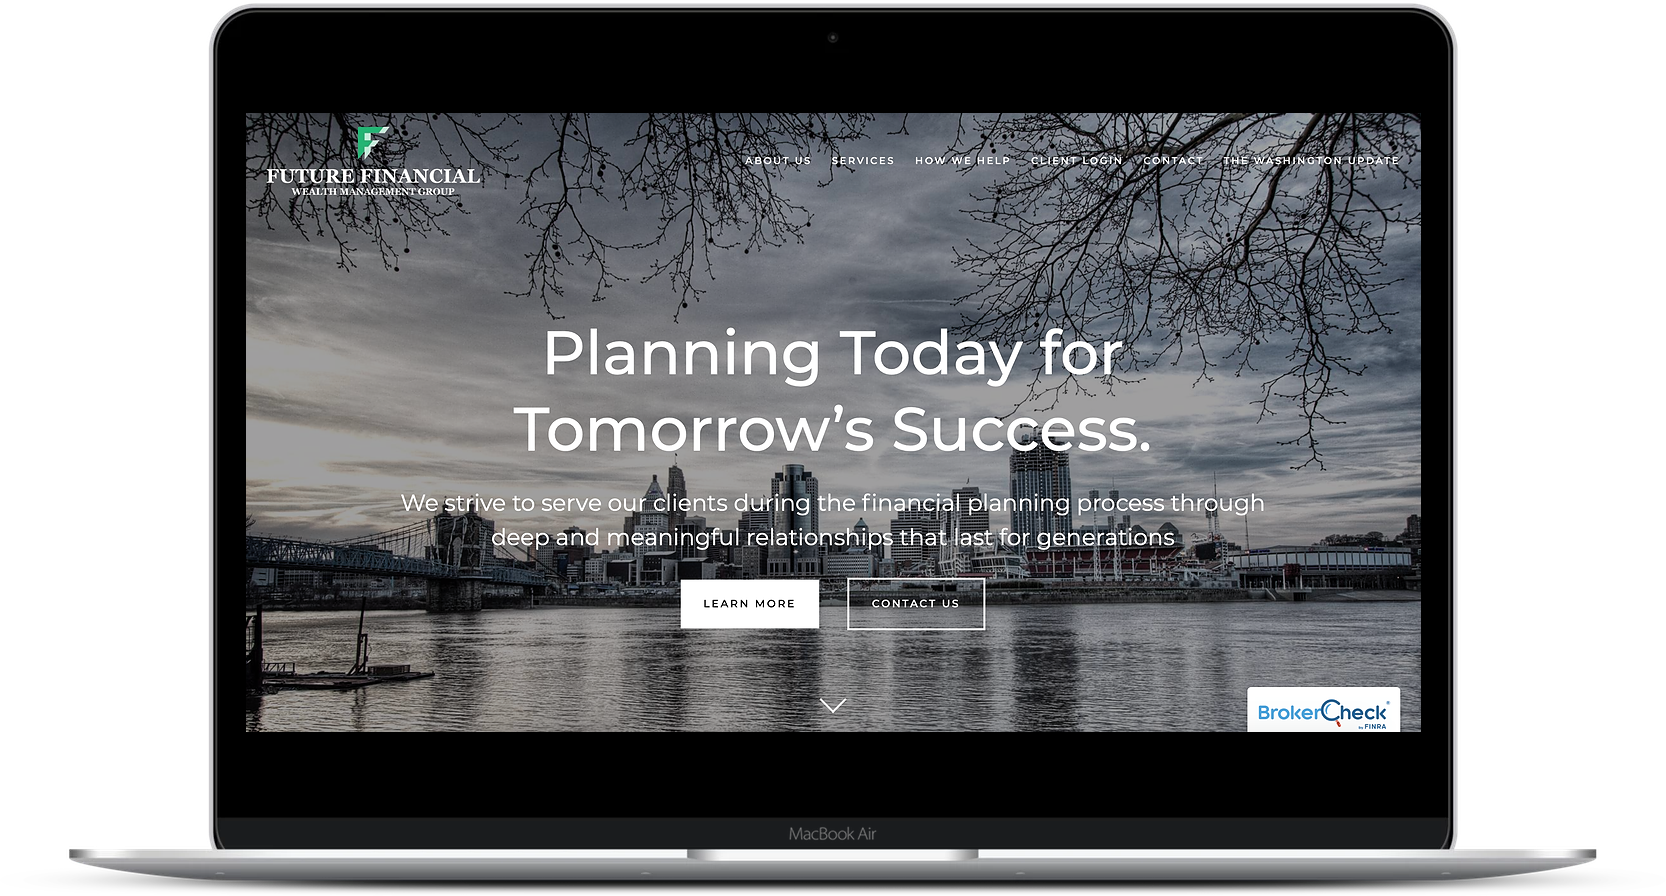 financial advisor website cta example future financial wealth management